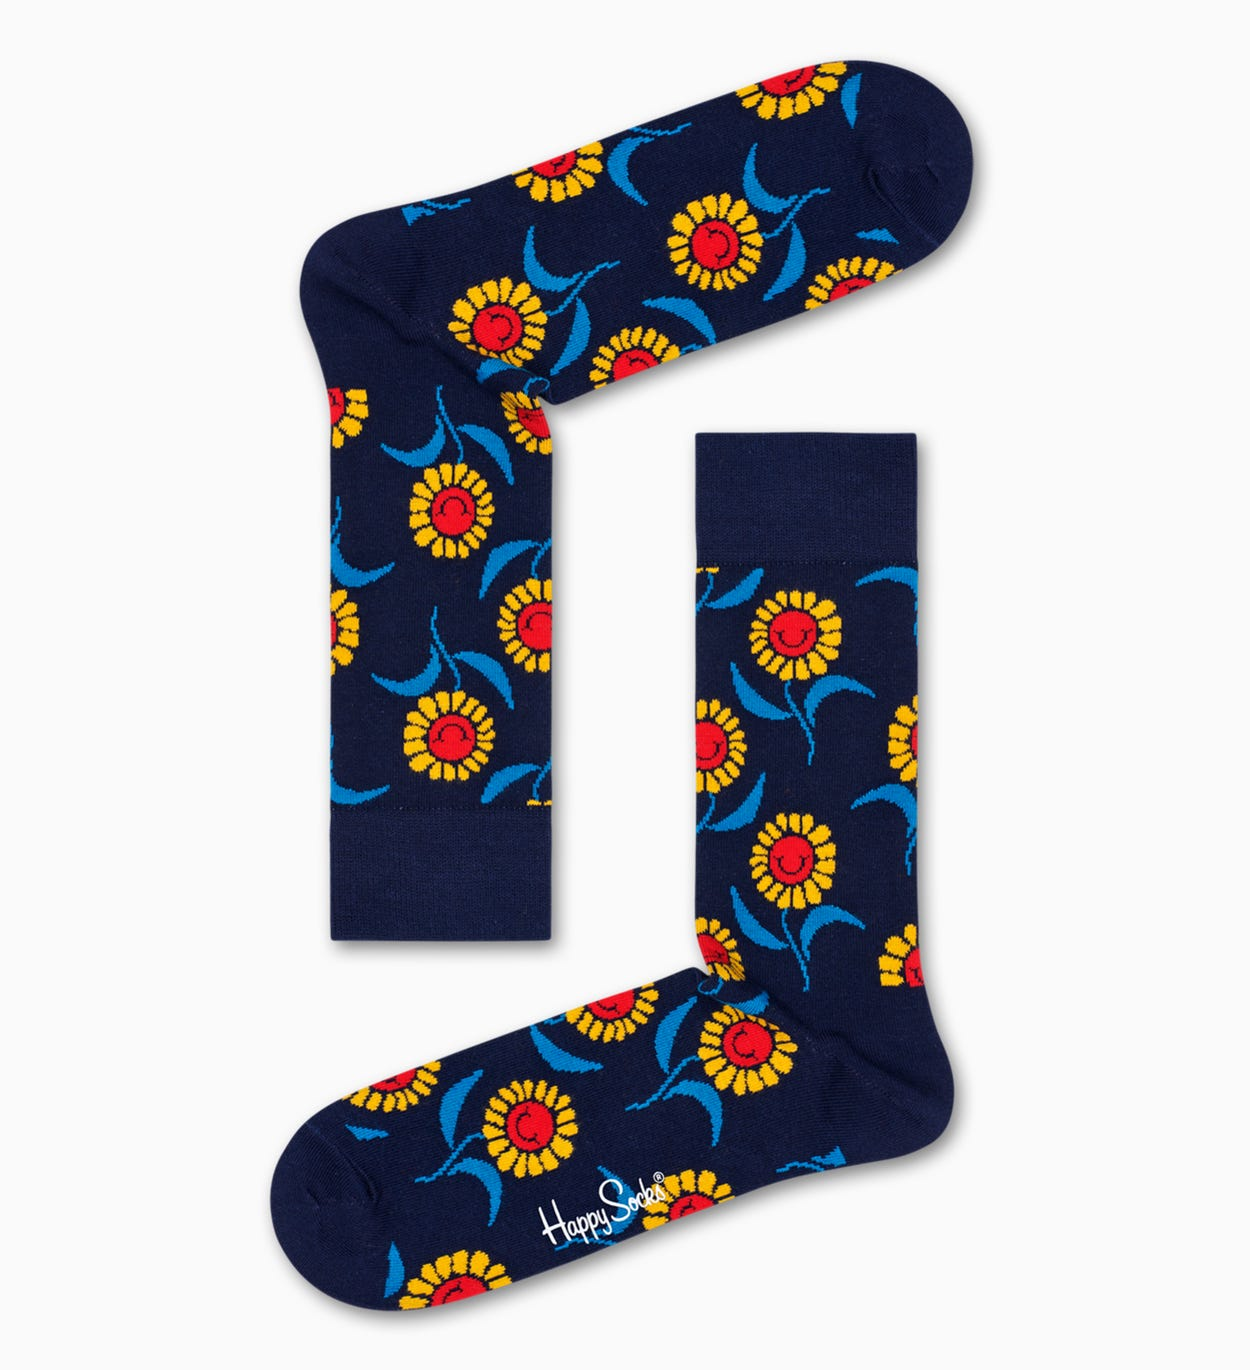 Patterned Navy Socks: Sunflower | Happy Socks